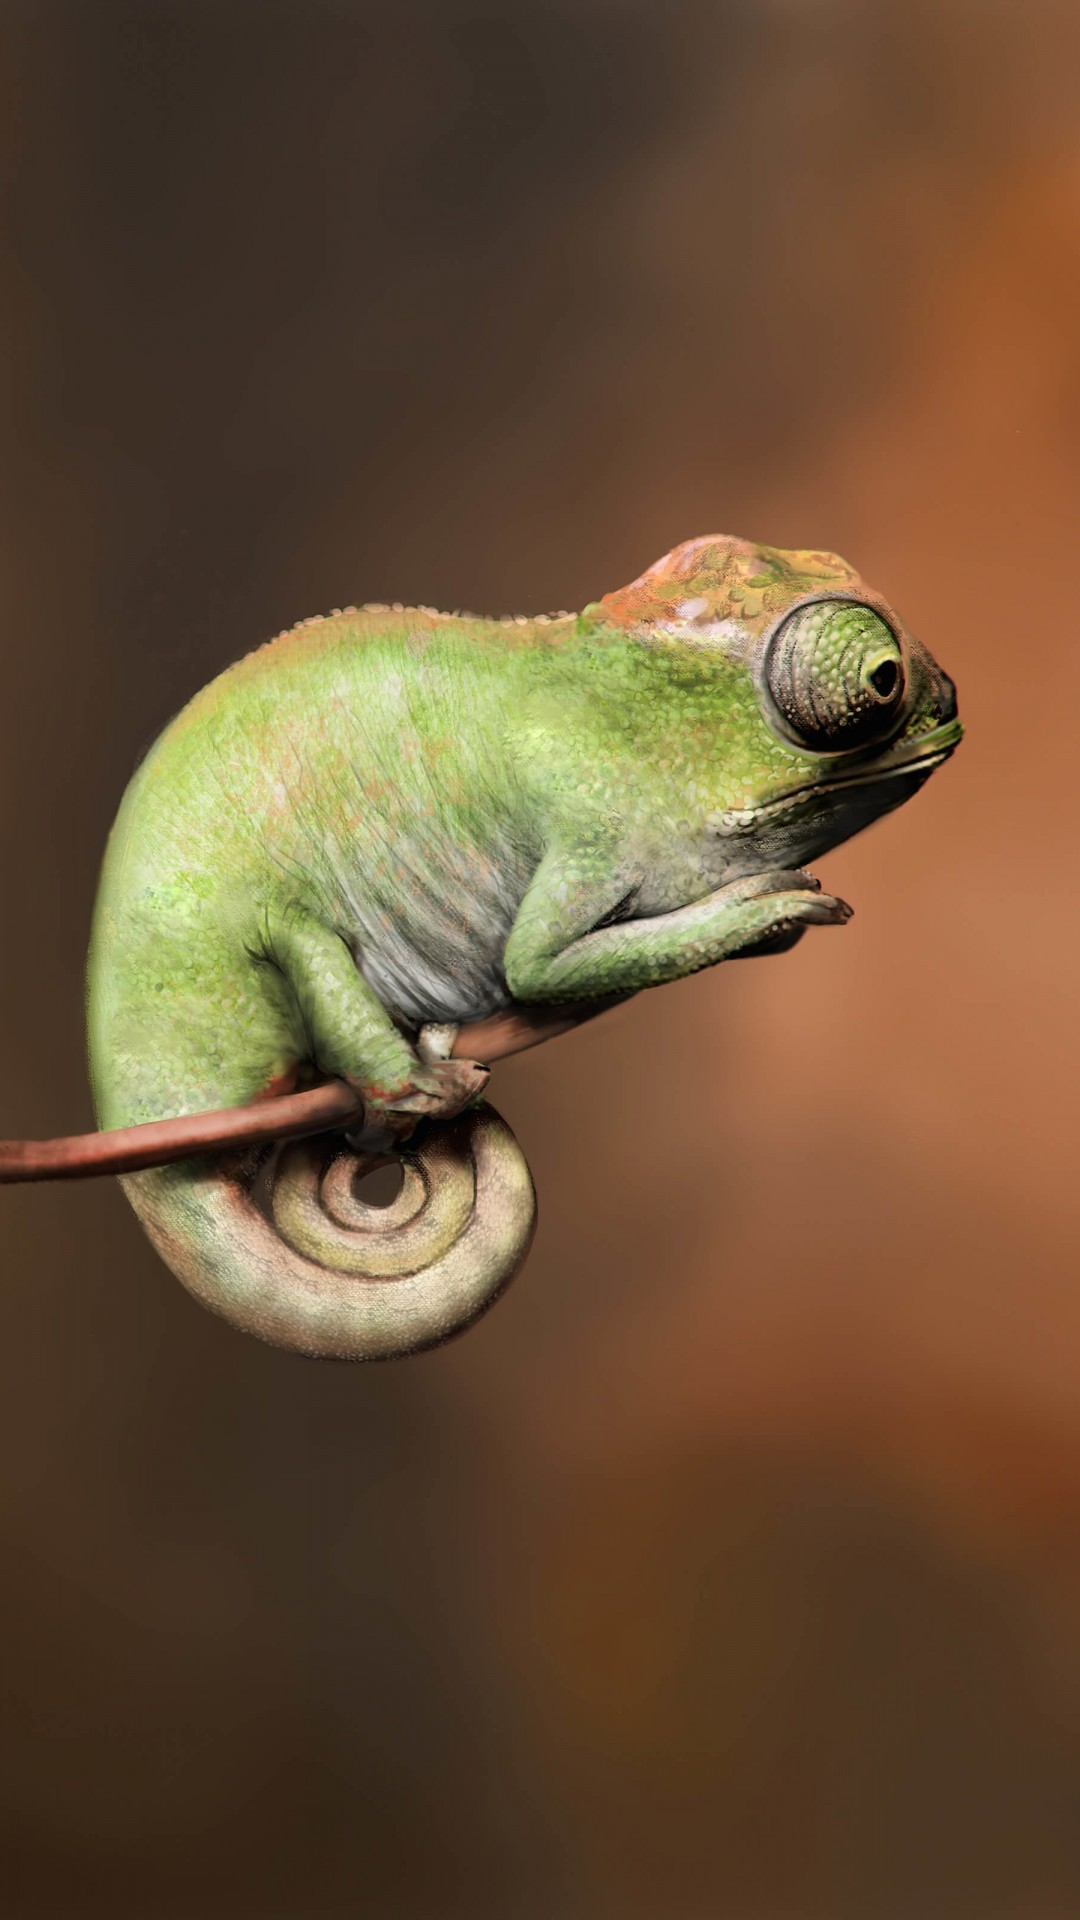 Baby Chameleon Perching On a Twisted Branch Wallpaper for SAMSUNG Galaxy S4